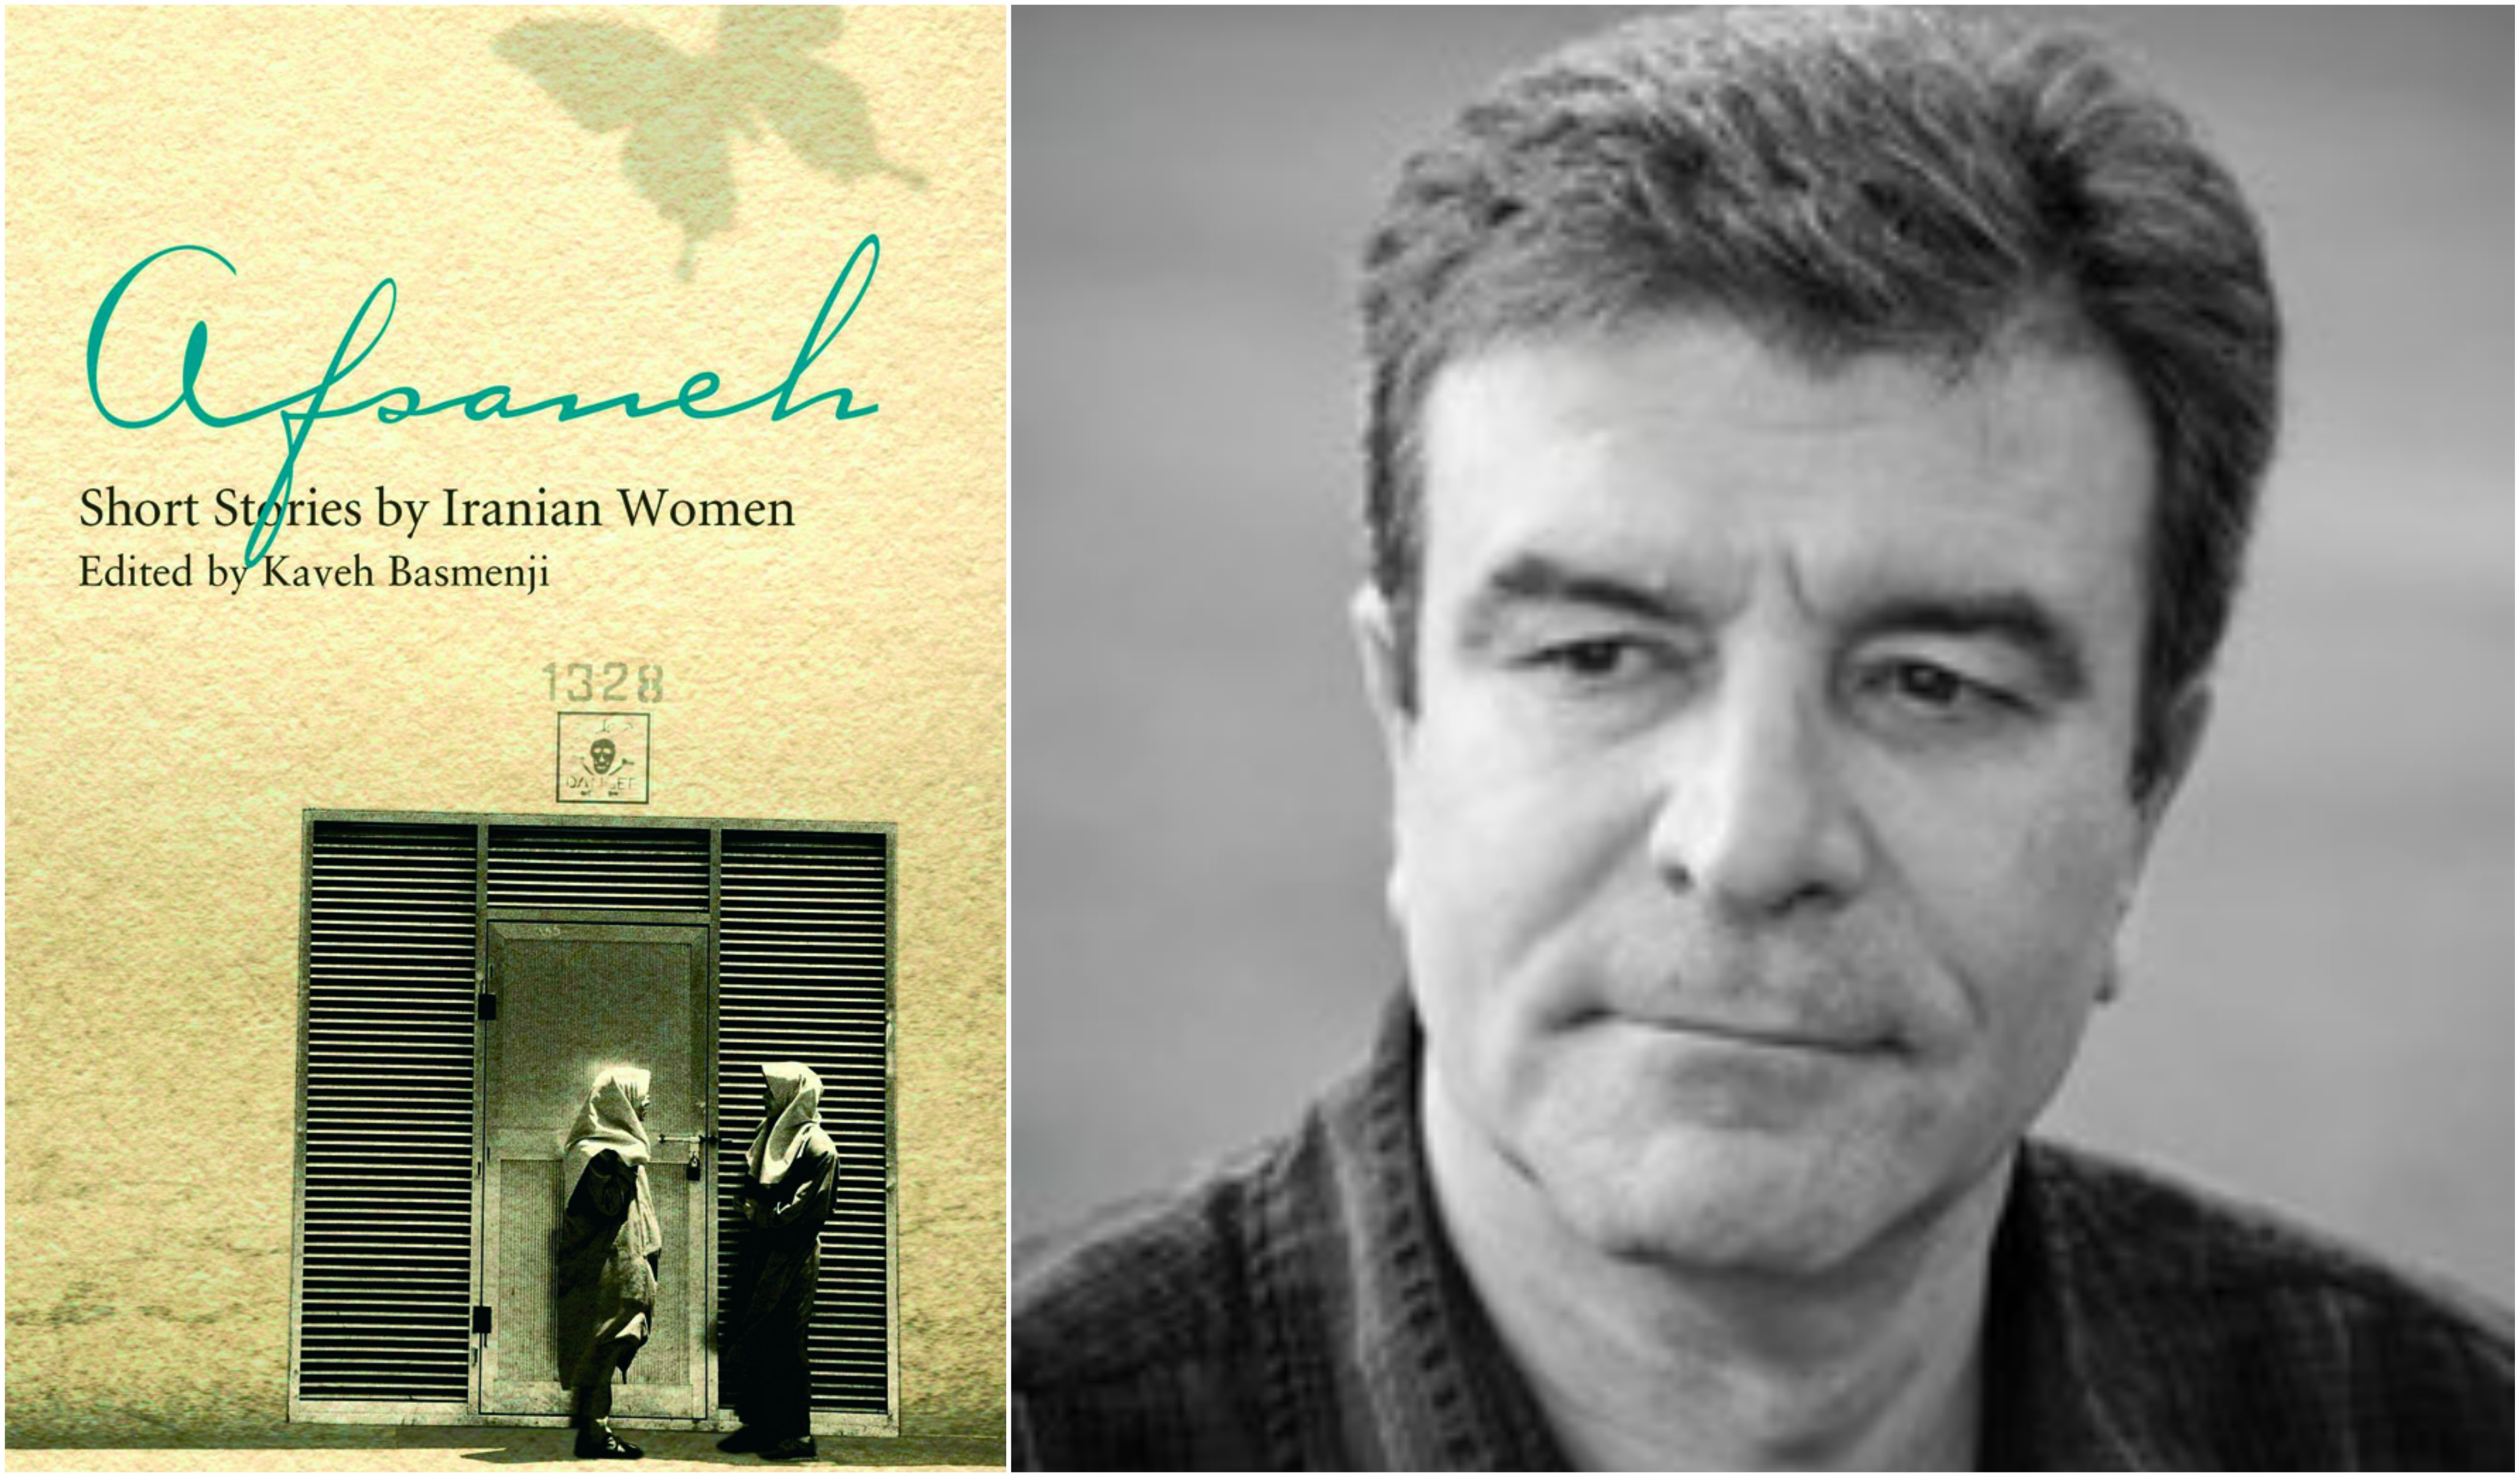 Book Review: Afsaneh: Short Stories By Iranian Women By Kaveh Basmenji